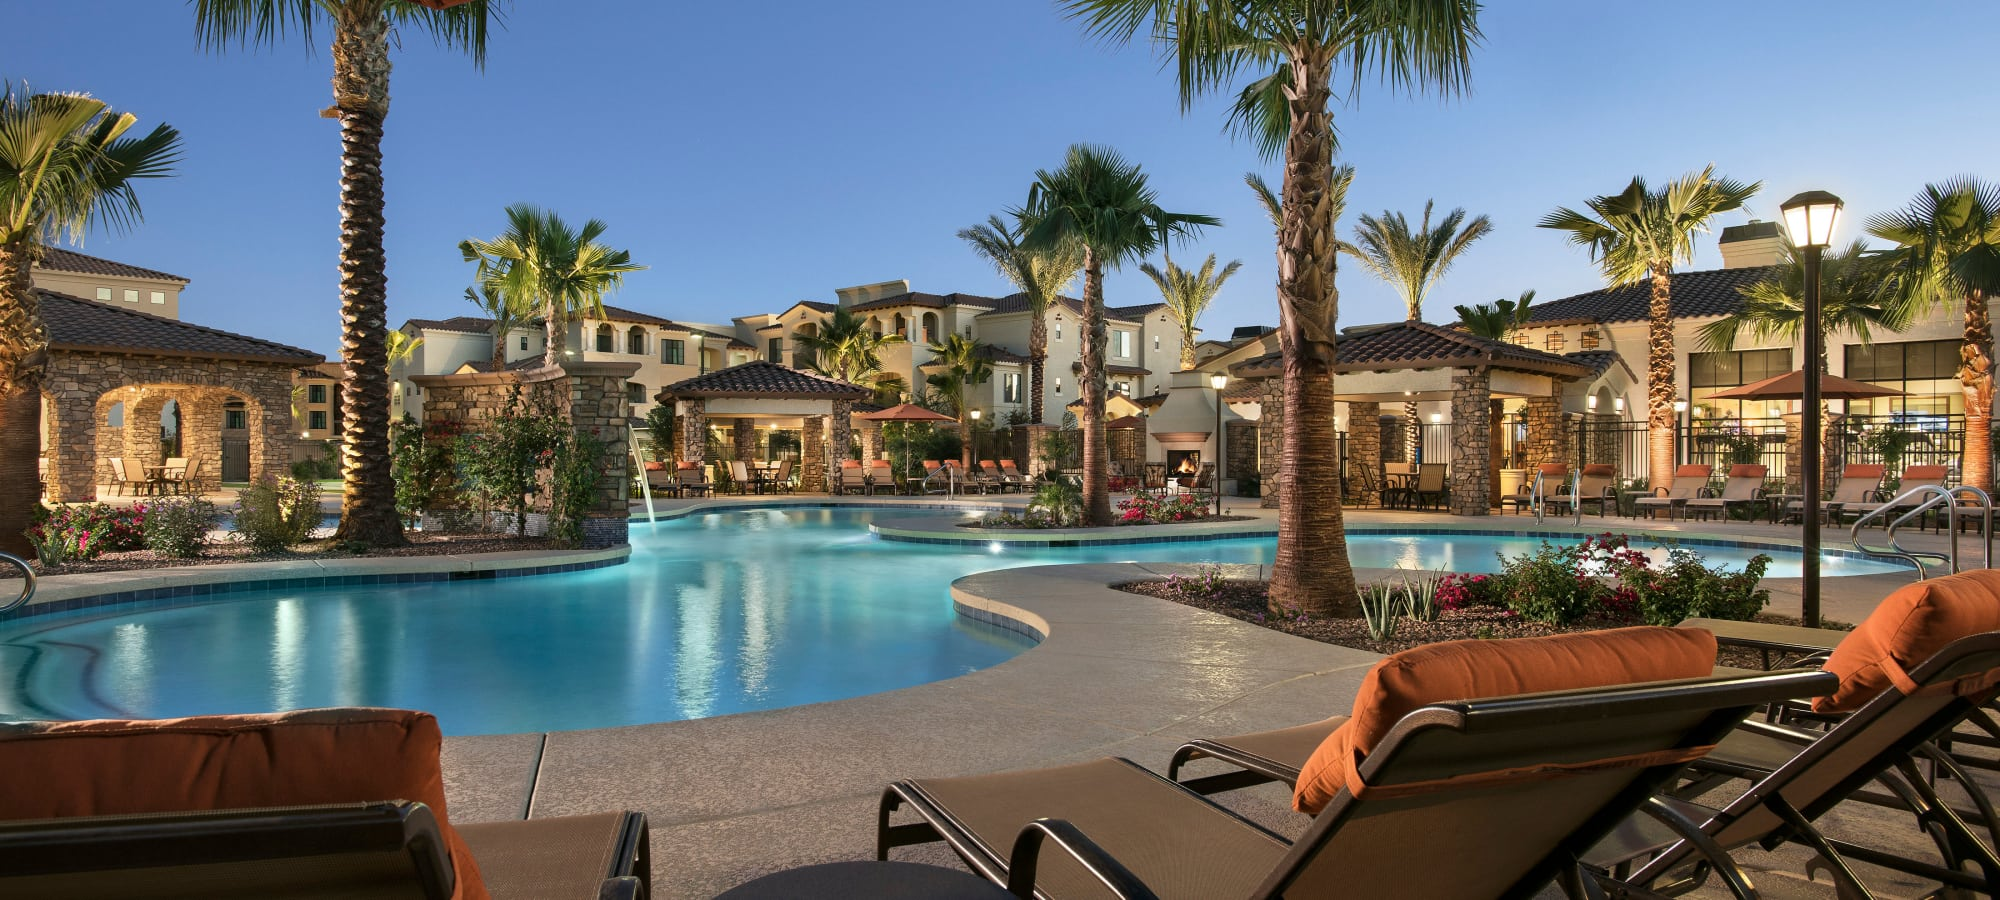 Swimming pool at San Privada in Gilbert, Arizona